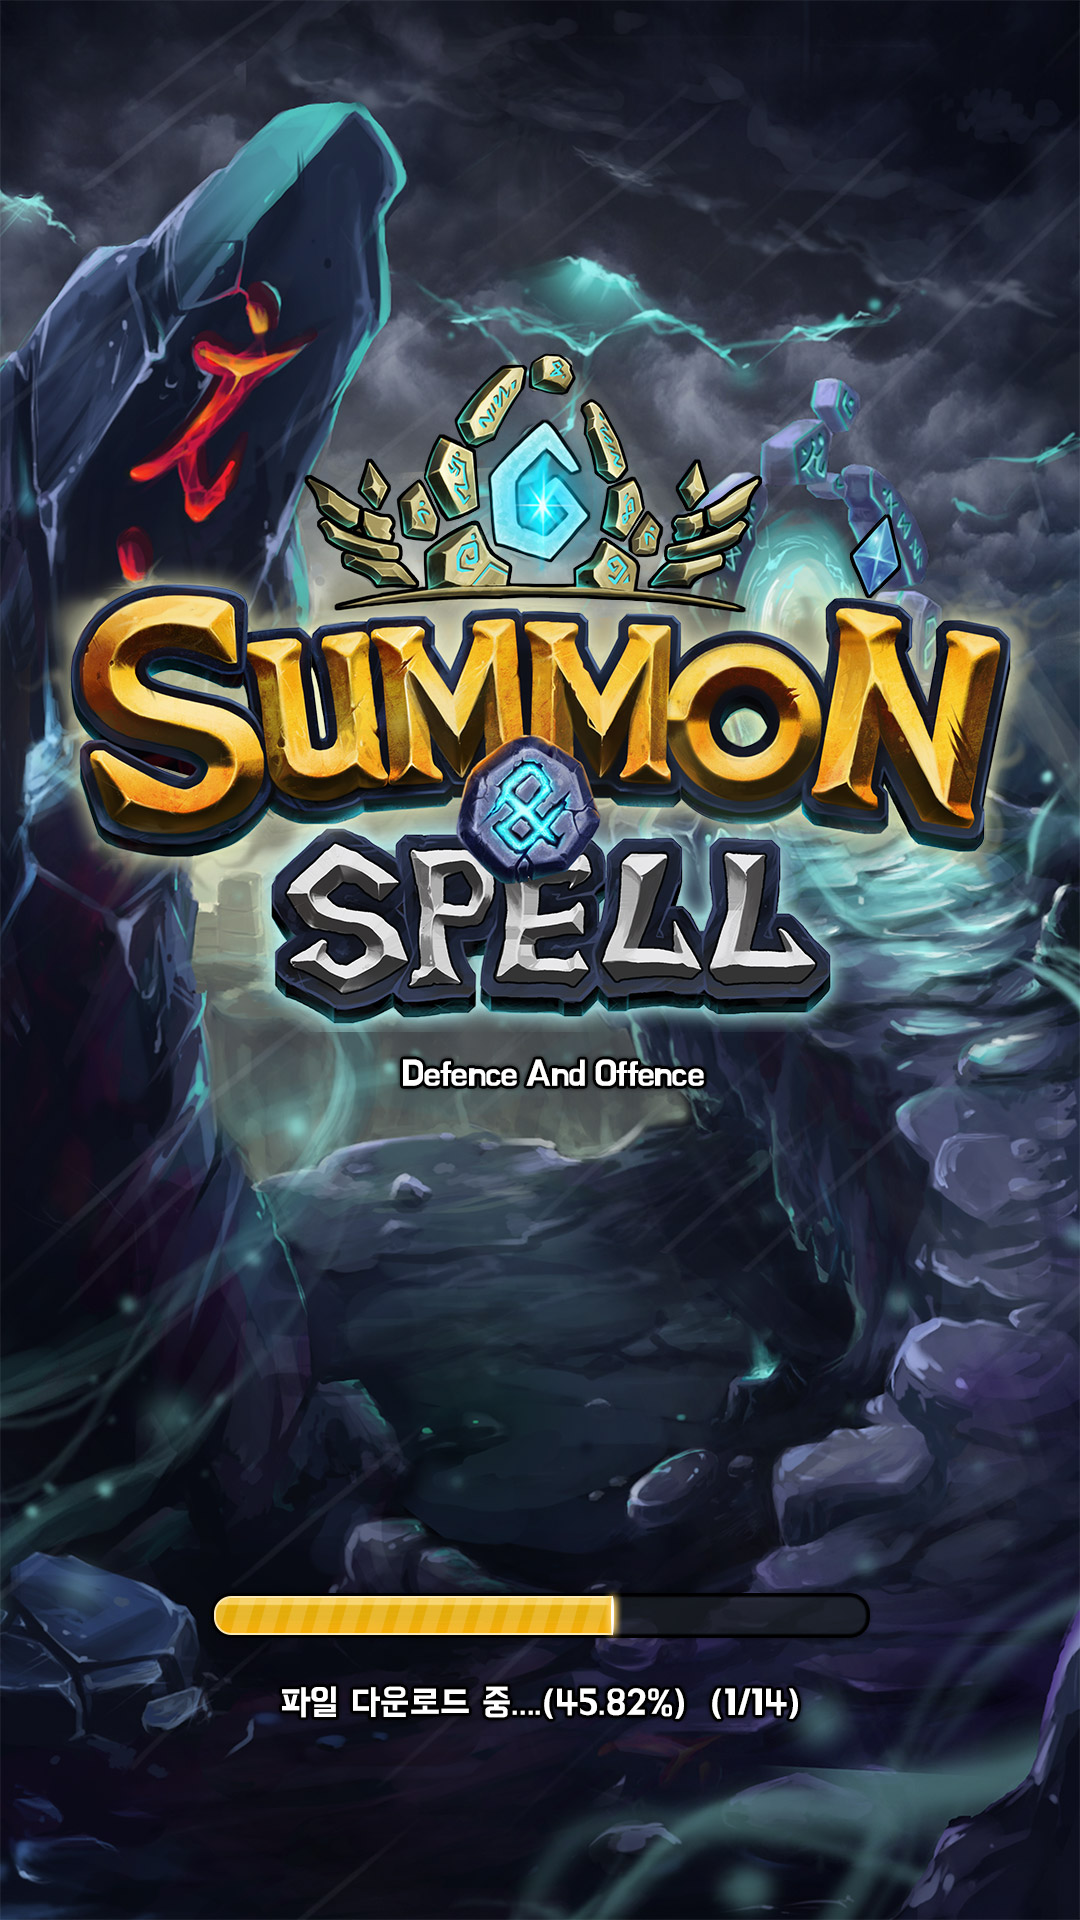 [MWU Korea '18] SUMMON & SPELL / BONGWOOREE